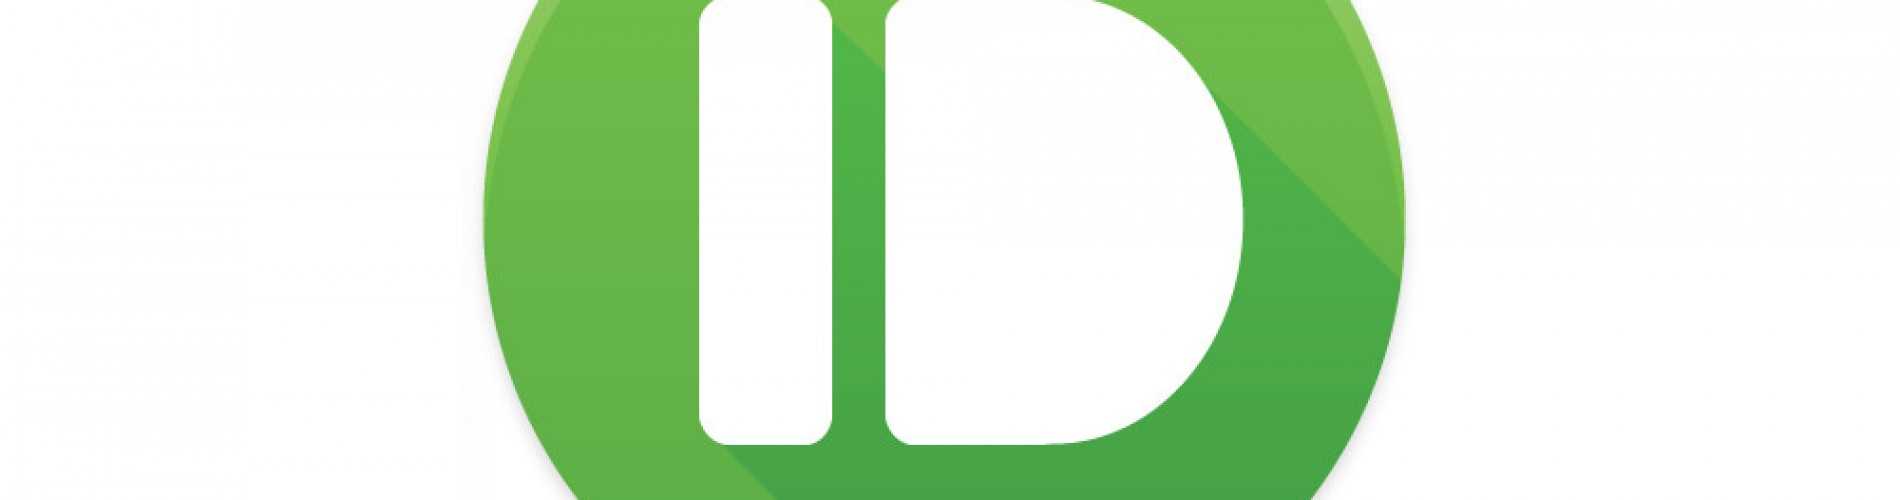 Pushbullet brings messaging to app in latest update